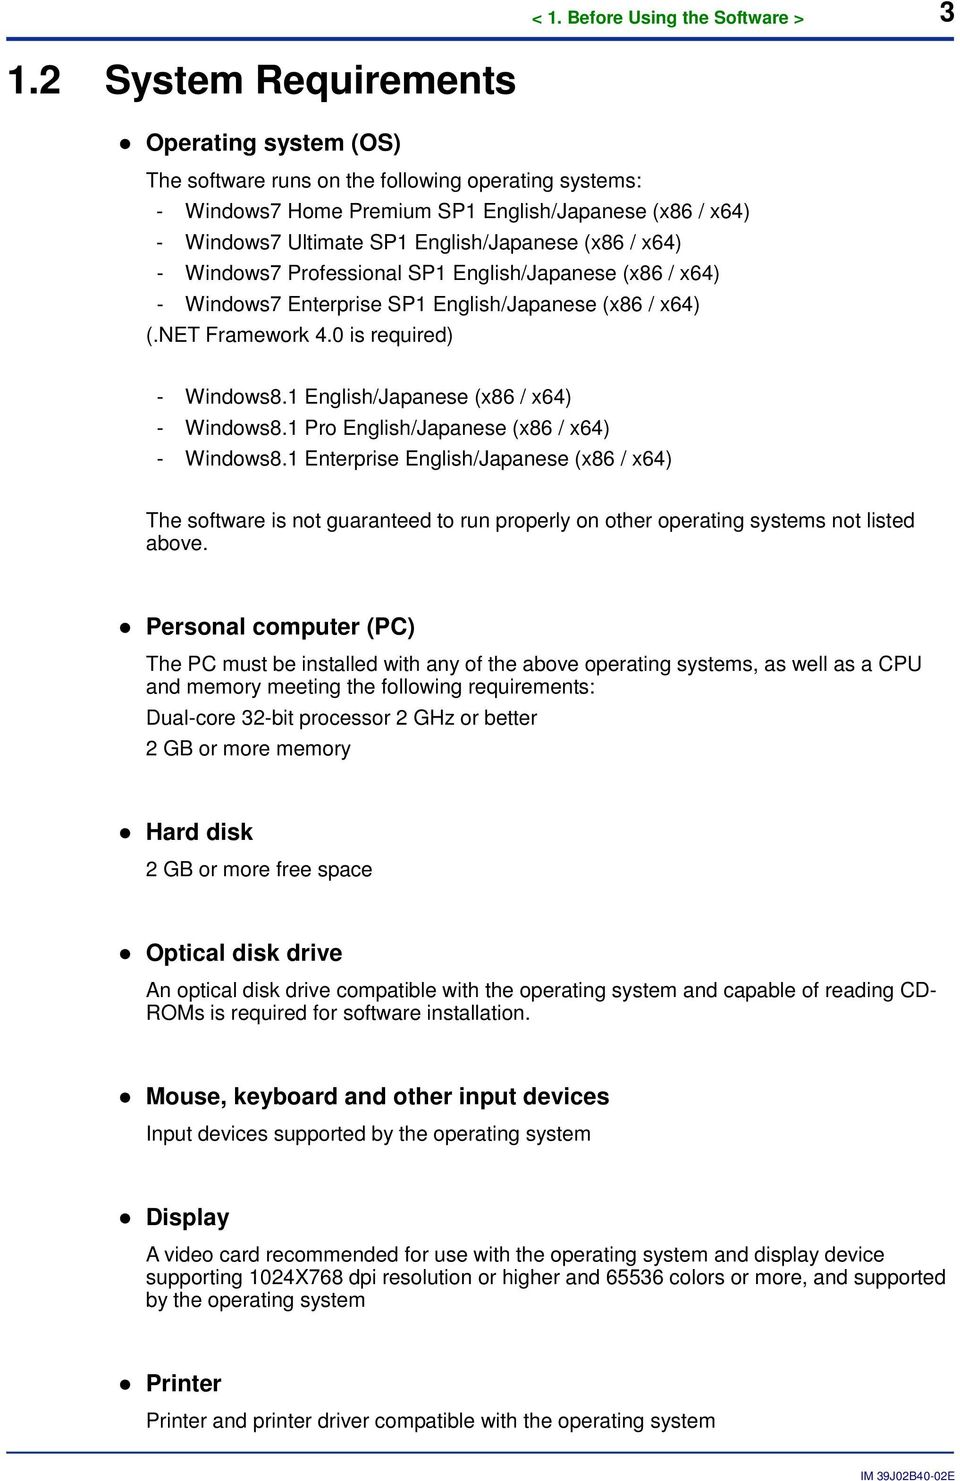 (x86 / x64) - Windows7 Professional SP1 English/Japanese (x86 / x64) - Windows7 Enterprise SP1 English/Japanese (x86 / x64) (.NET Framework 4.0 is required) - Windows8.